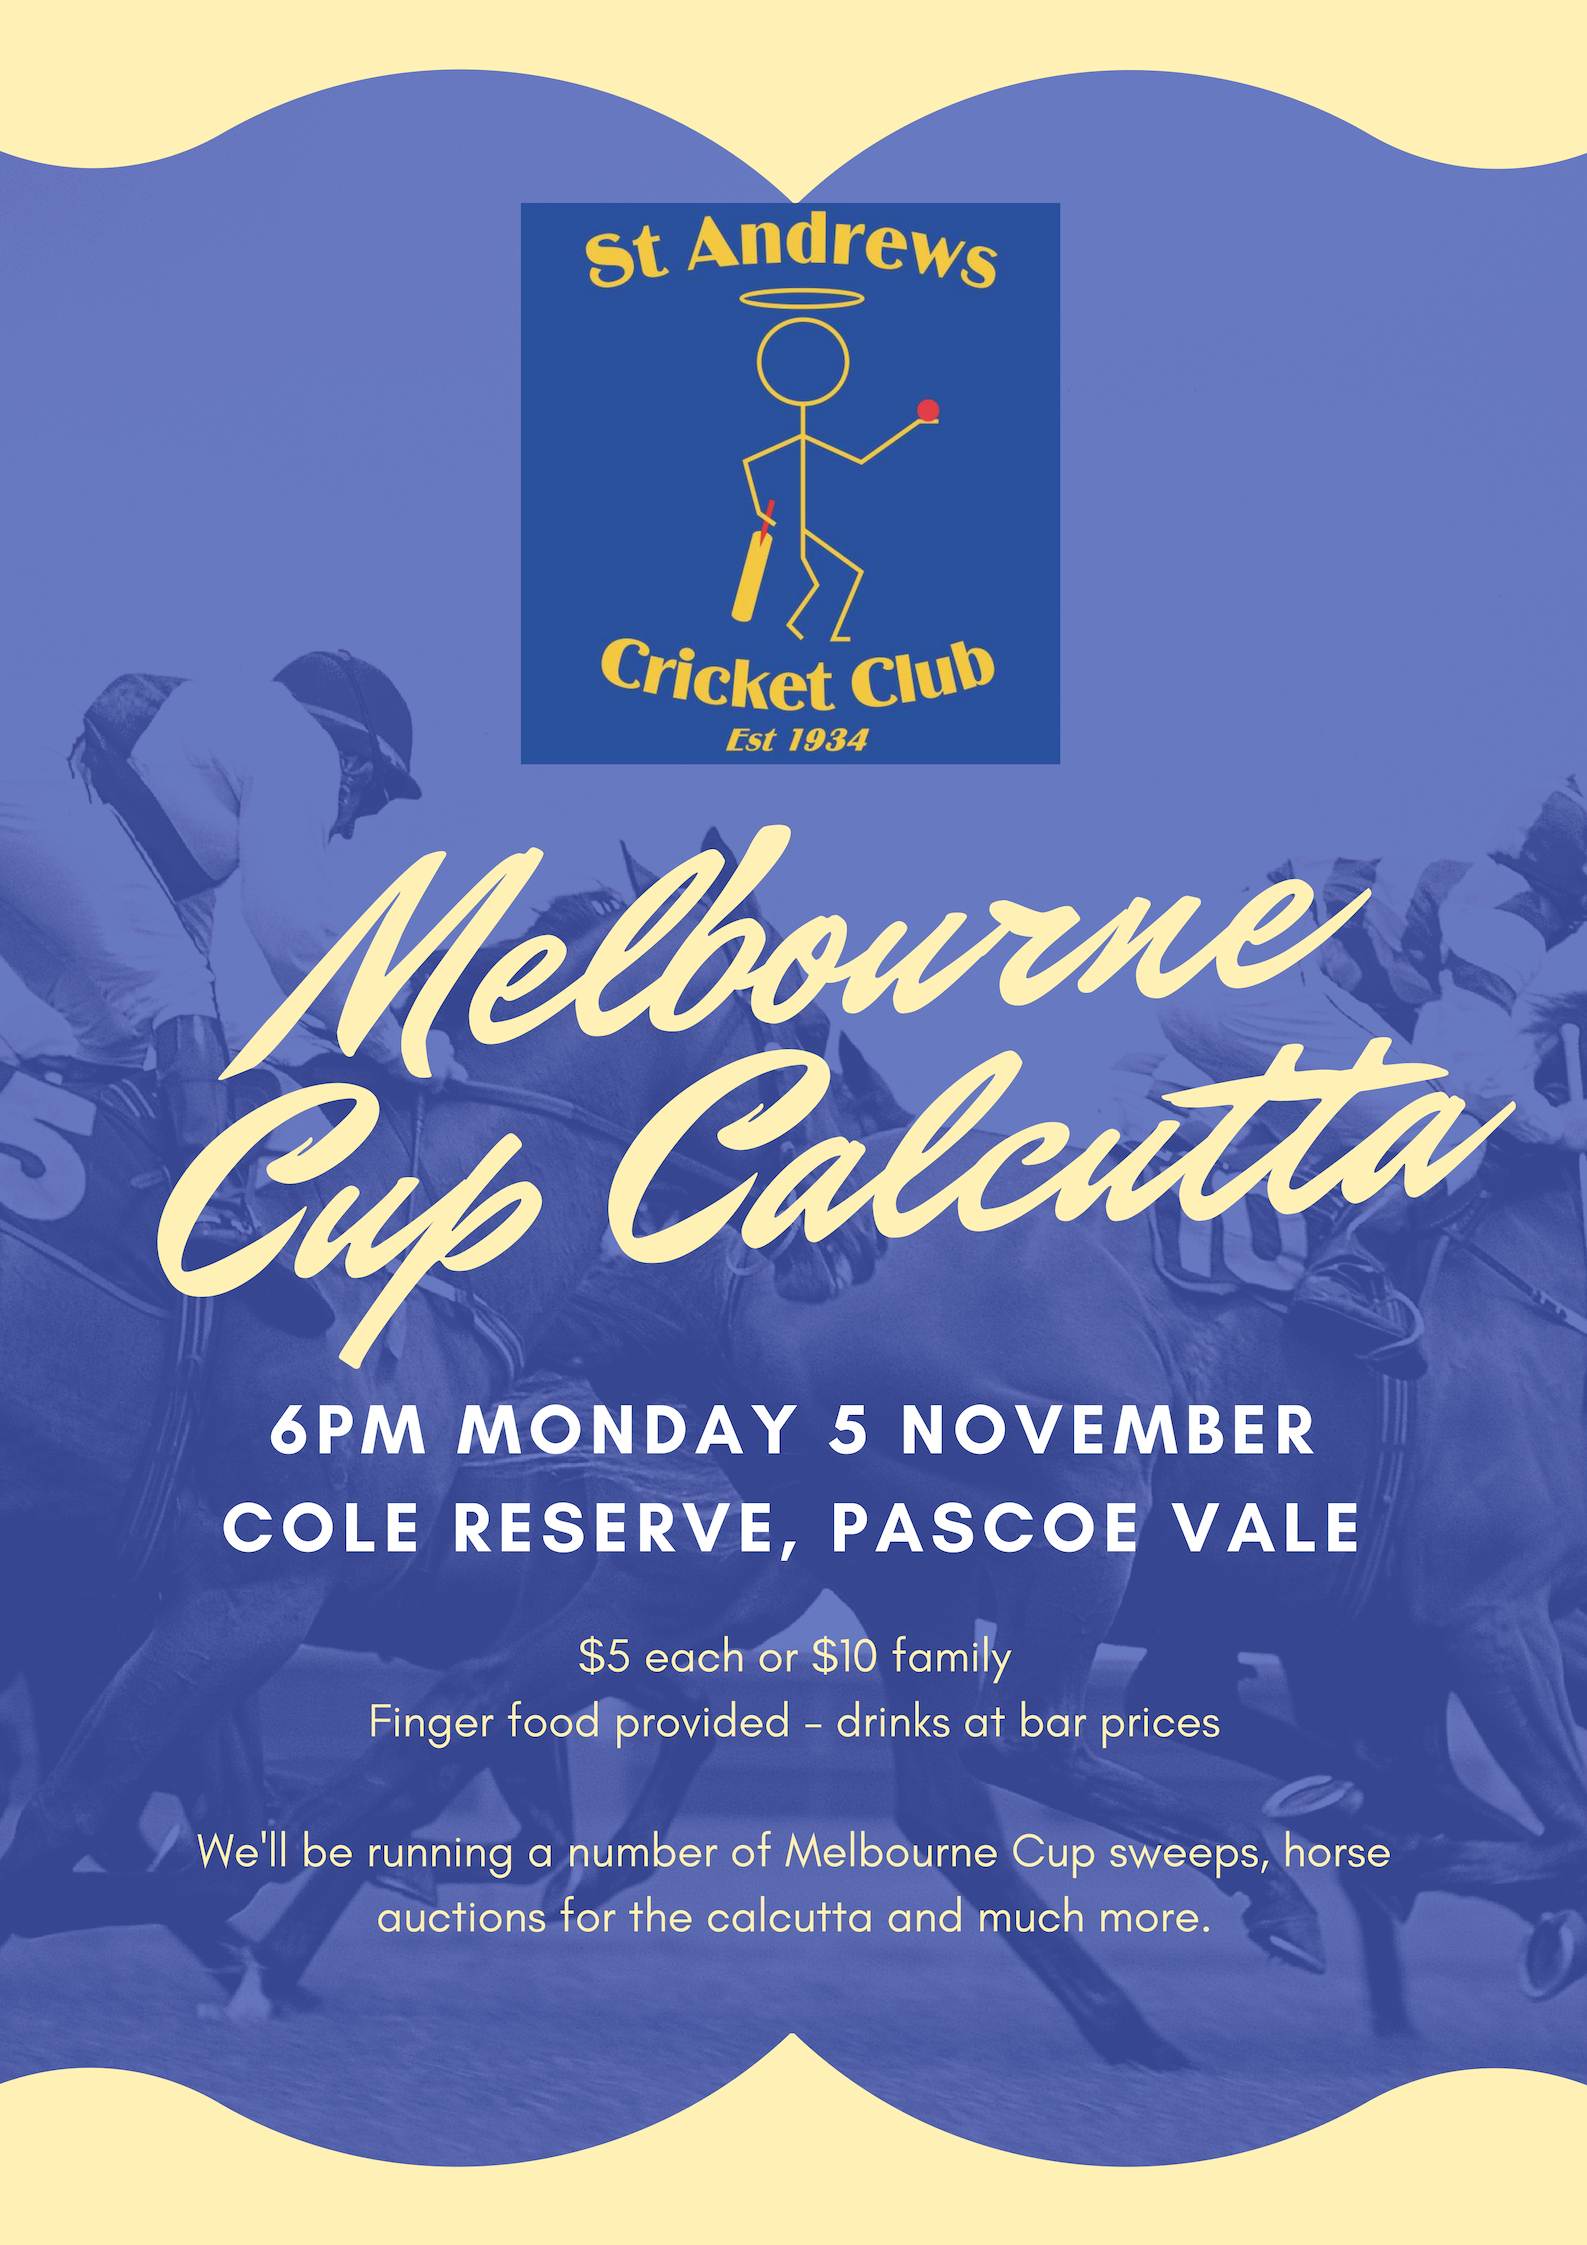 Melbourne Cup Calcutta Spreadsheet Within Melbourne Cup Calcutta  St Andrews Cricket Club Pascoe Vale